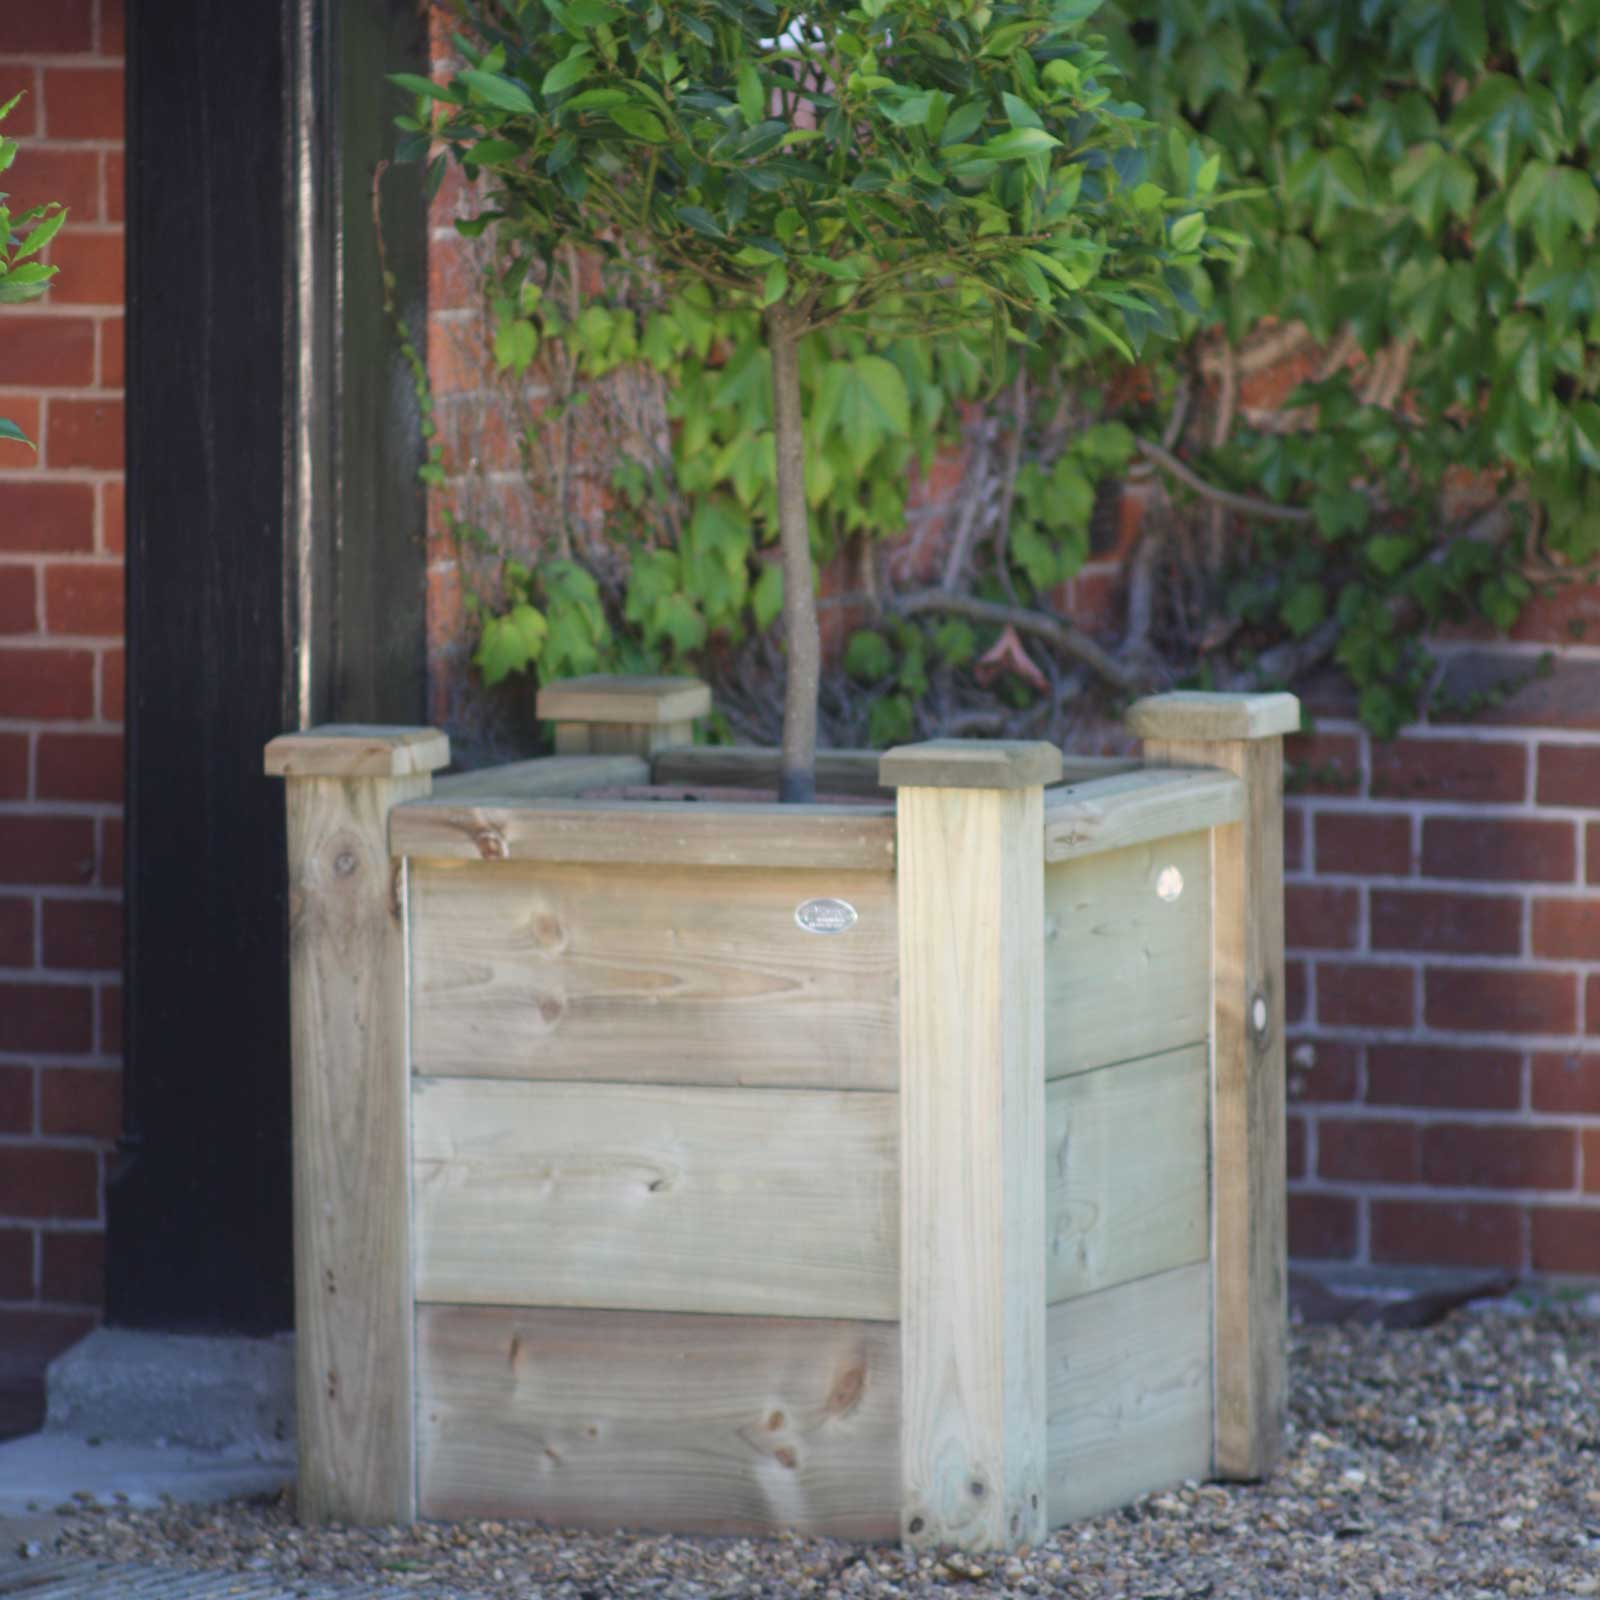 Square Wooden Planters Harrod Horticultural